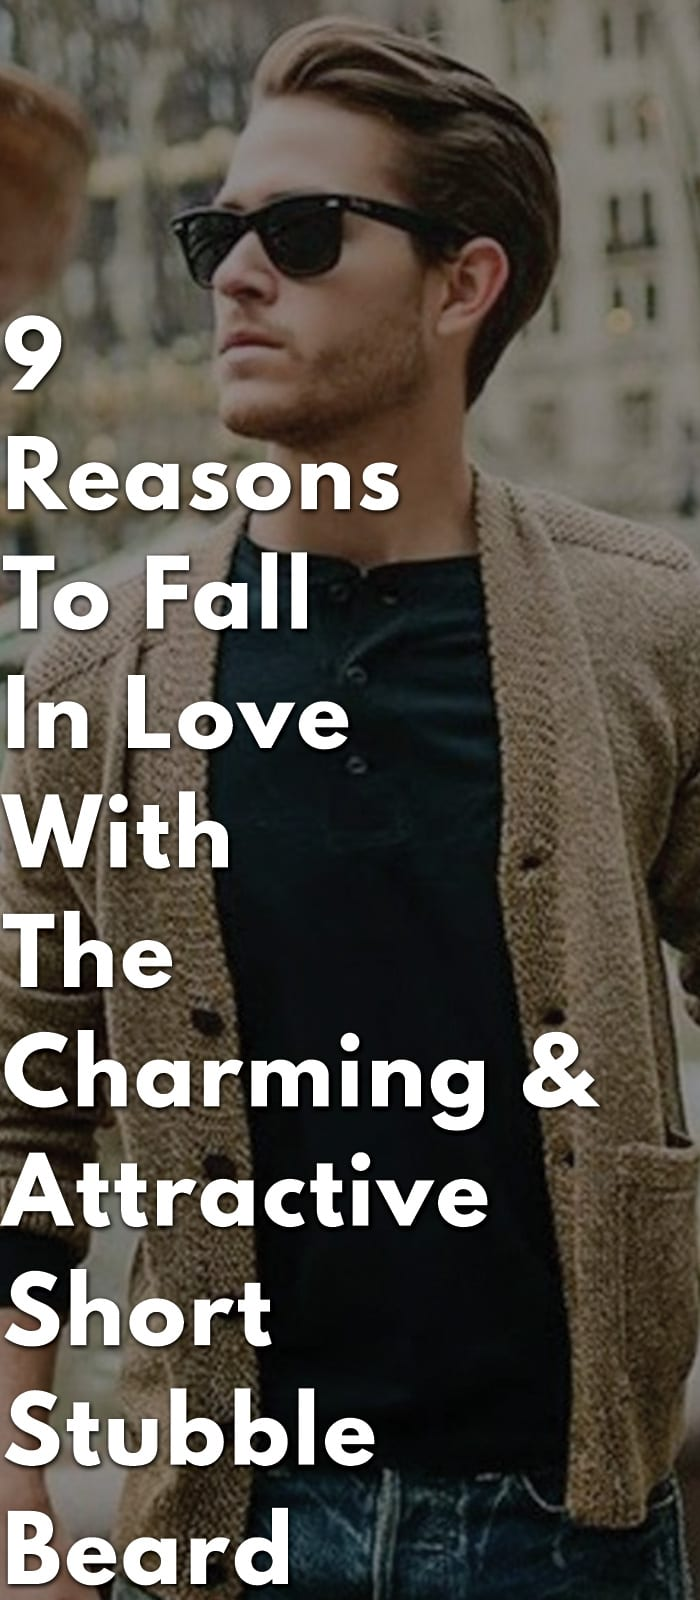 9-Reasons-To-Fall-In-Love-With-The-Charming-&-Attractive-Short-Stubble-Beard.